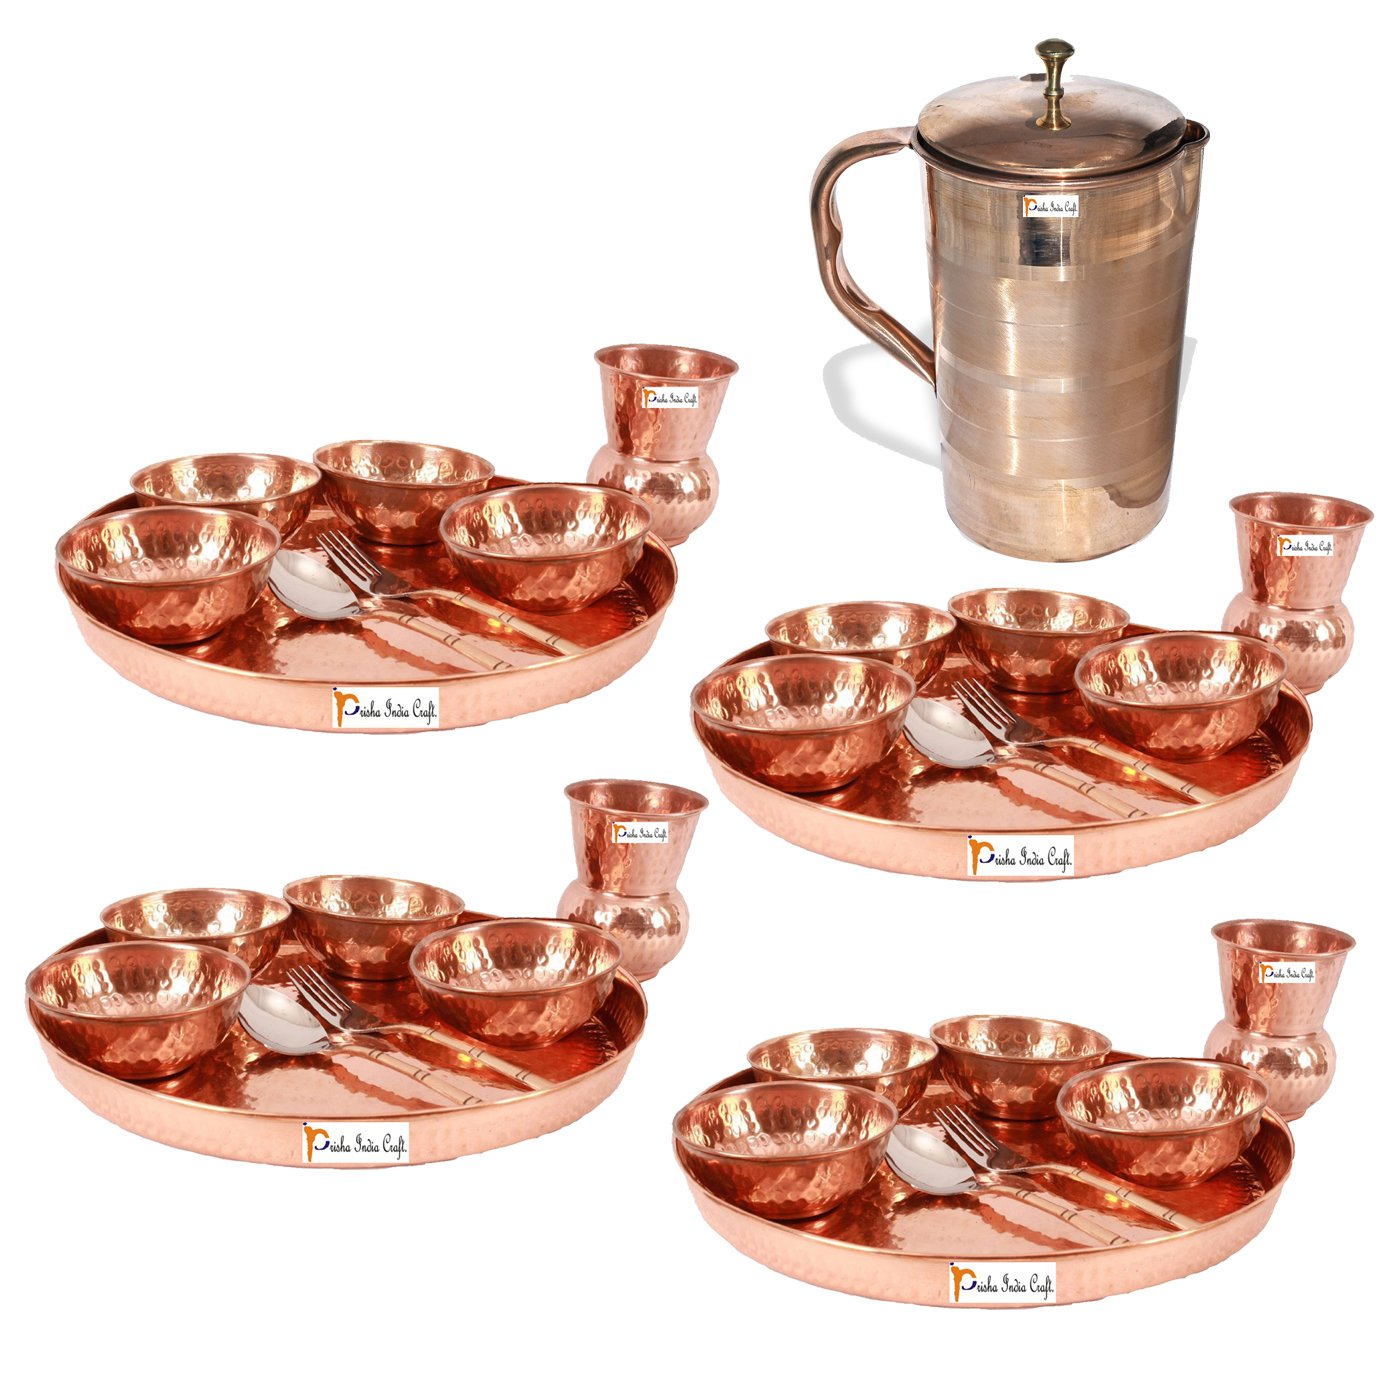 Prisha India Craft ® Set of 4 Dinnerware Traditional 100% Pure Copper Dinner Set of Thali Plate, Bowls, Glass and Spoon, Dia 12'' With 1 Luxury Style Pure Copper Pitcher Jug - Christmas Gift